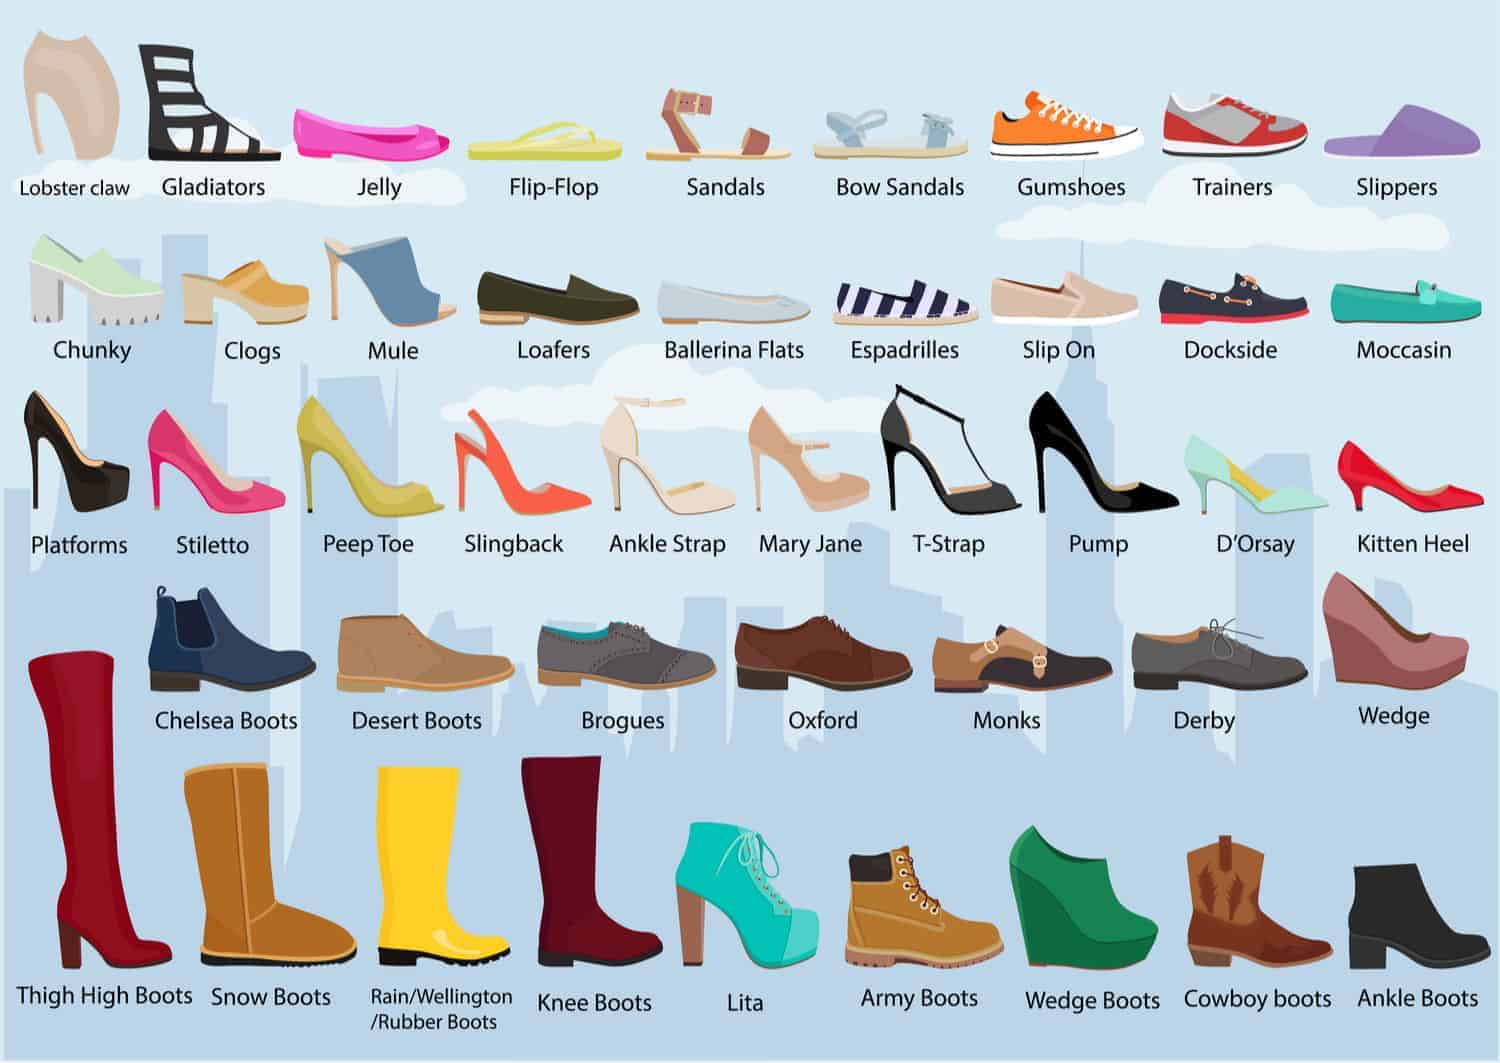 An illustrative chart depicting the different types of women's shoes.